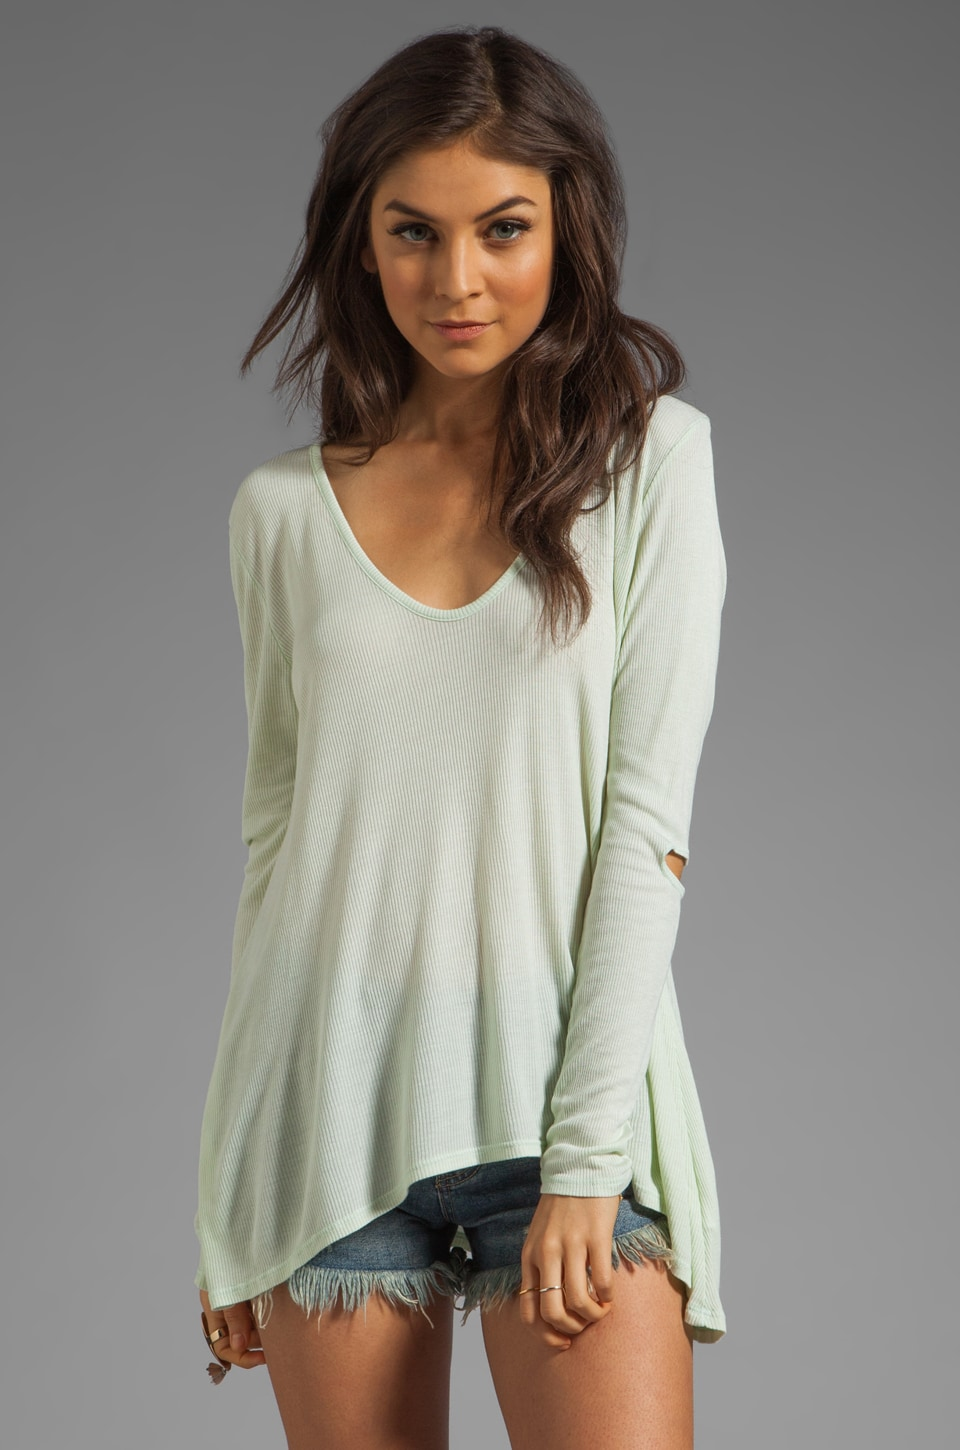 Saint Grace Pia Elbow Top in Mint